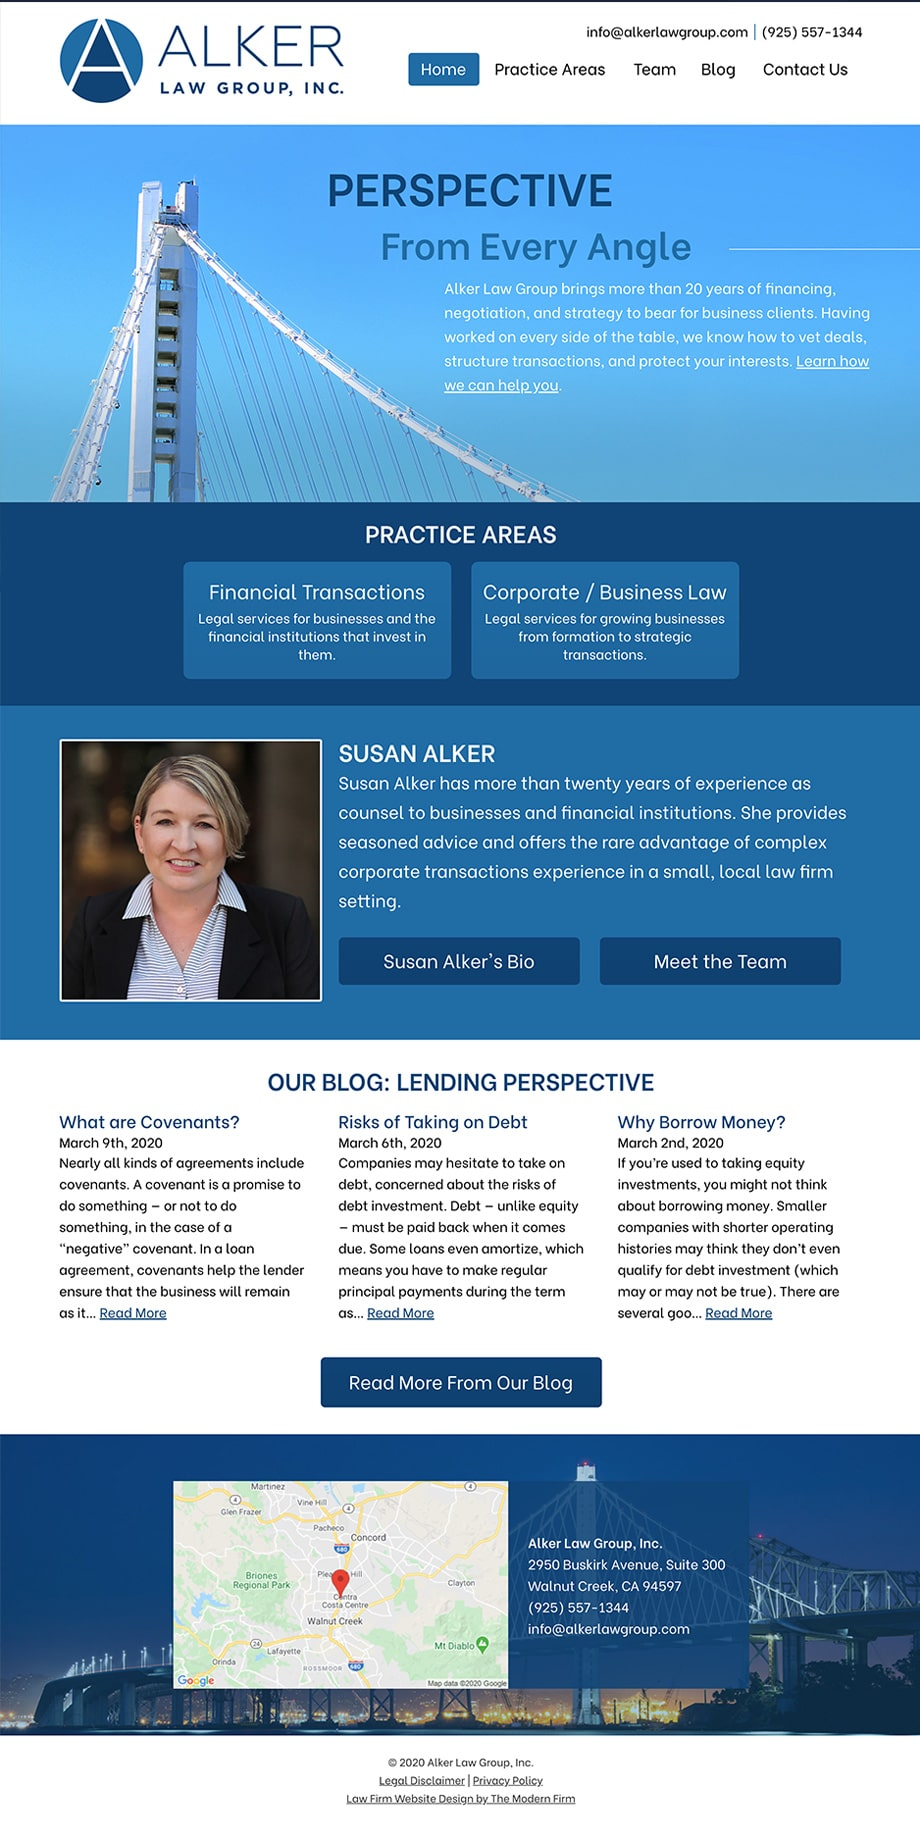 Law Firm Website for Alker Law Group, Inc.